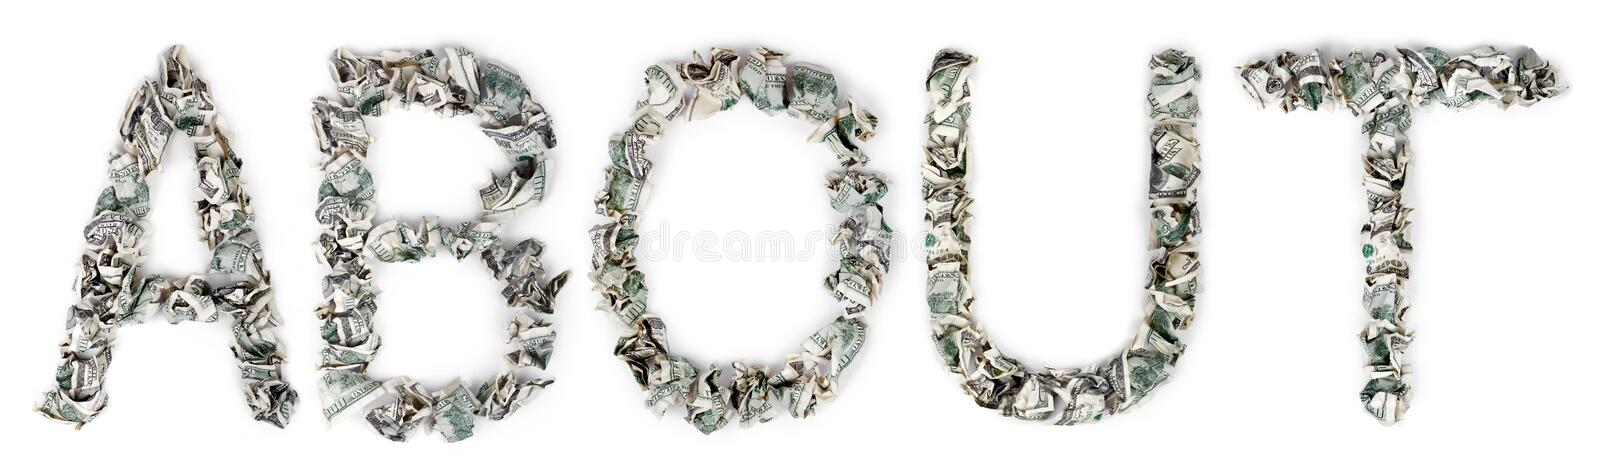 Download About - Crimped 100$ Bills Stock Image - Image: 29763061